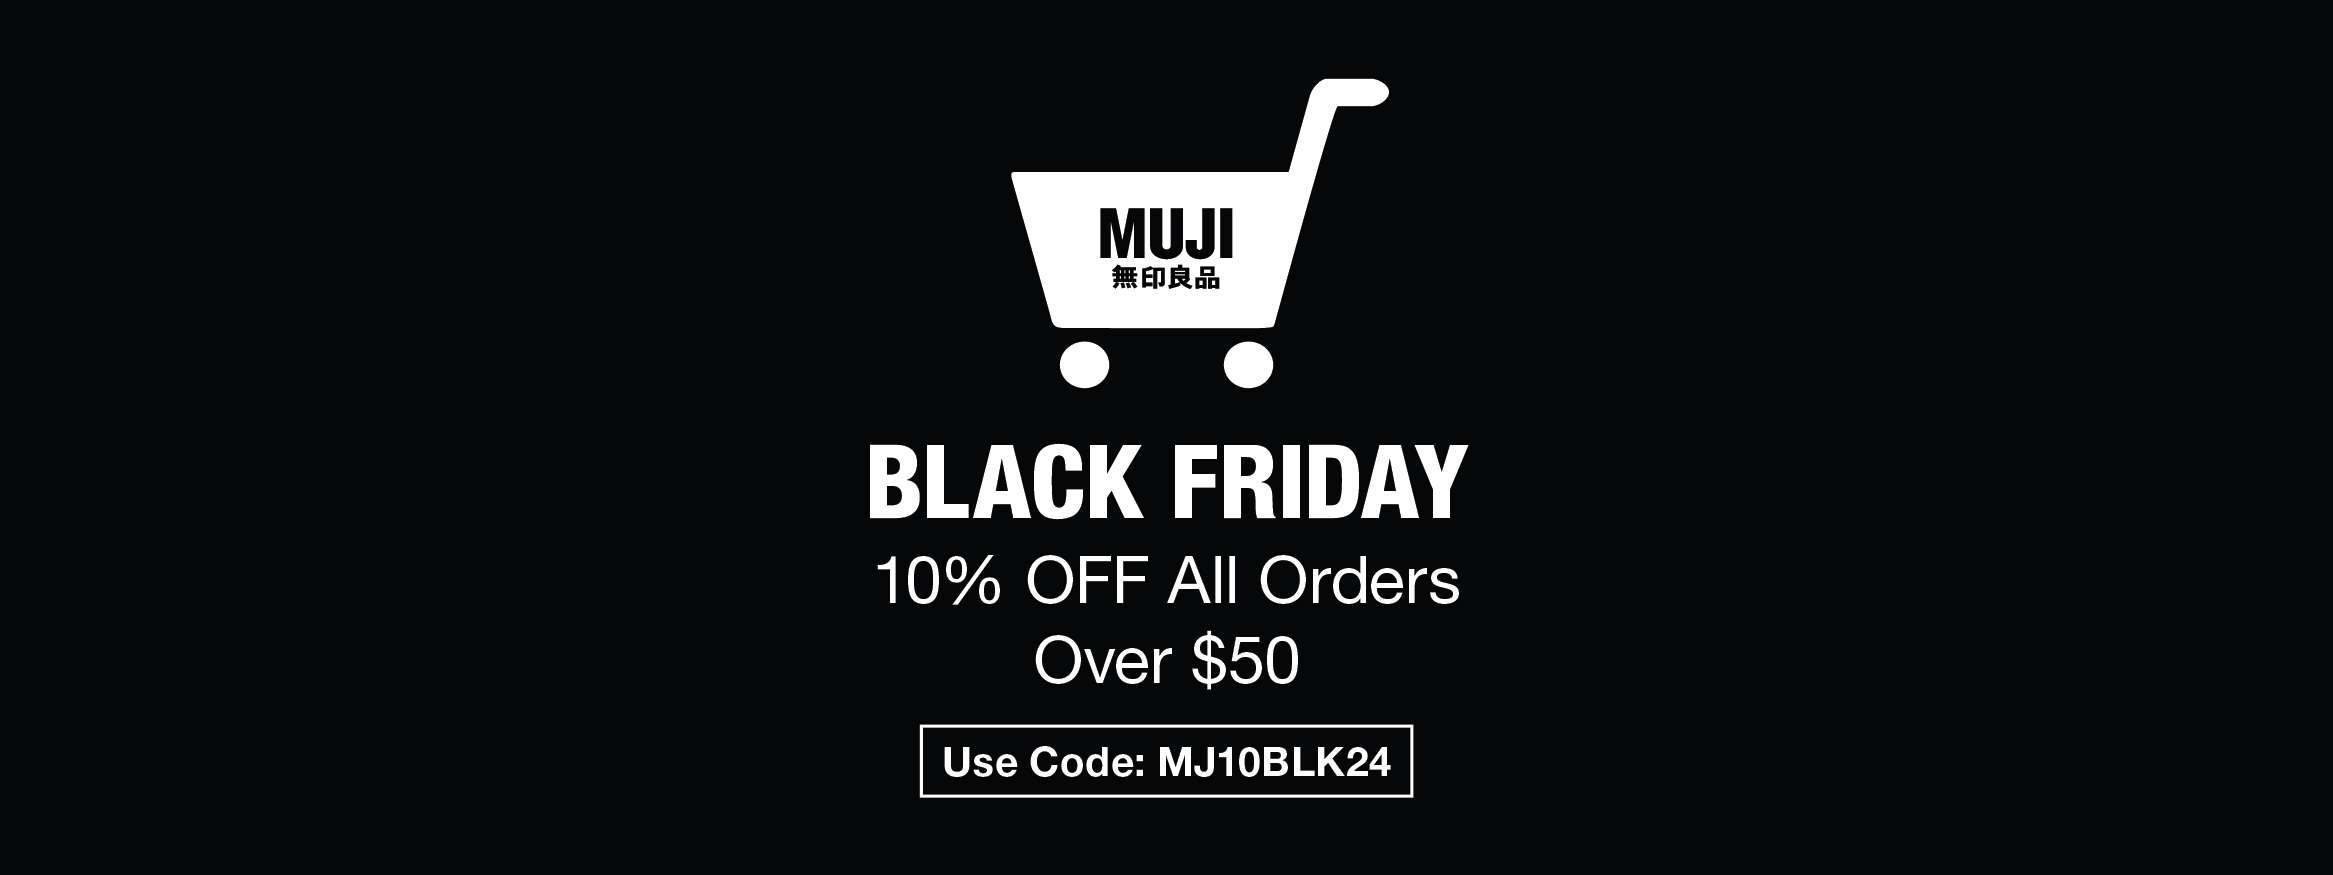 MUJI Black Friday: Take an additional 10% OFF everything online!